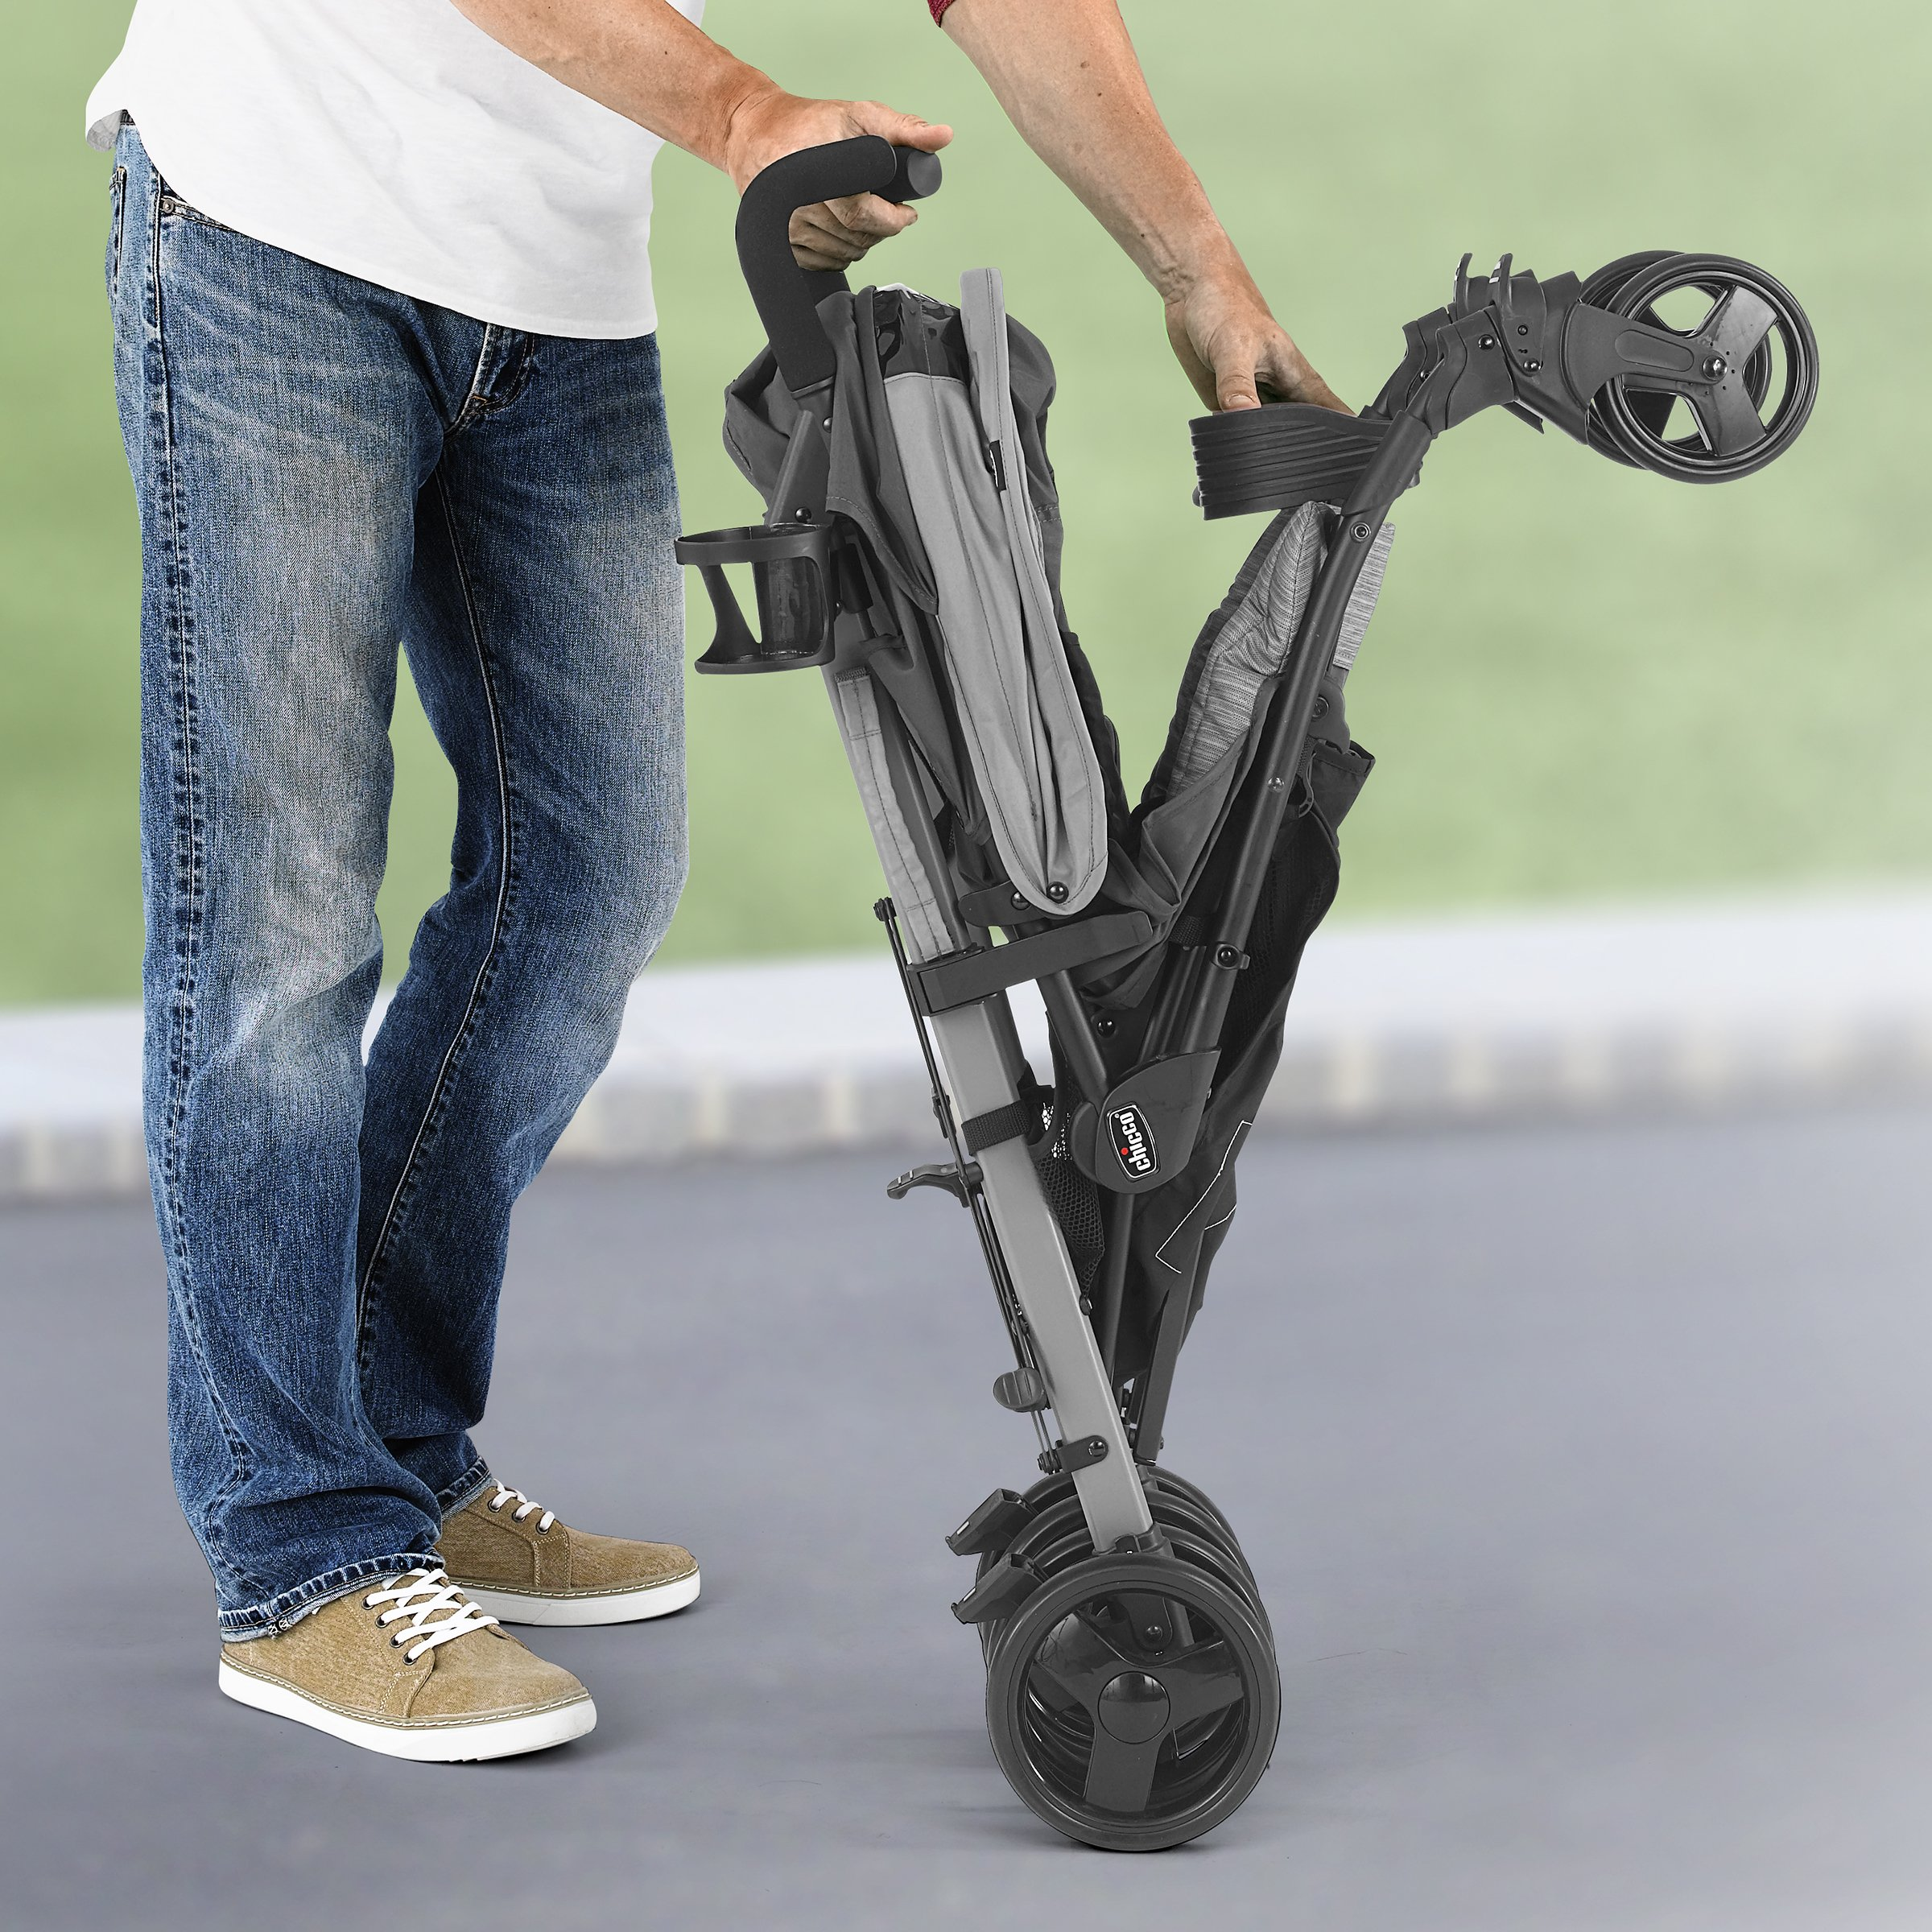 Chicco Liteway Stroller, Fog by Chicco (Image #3)